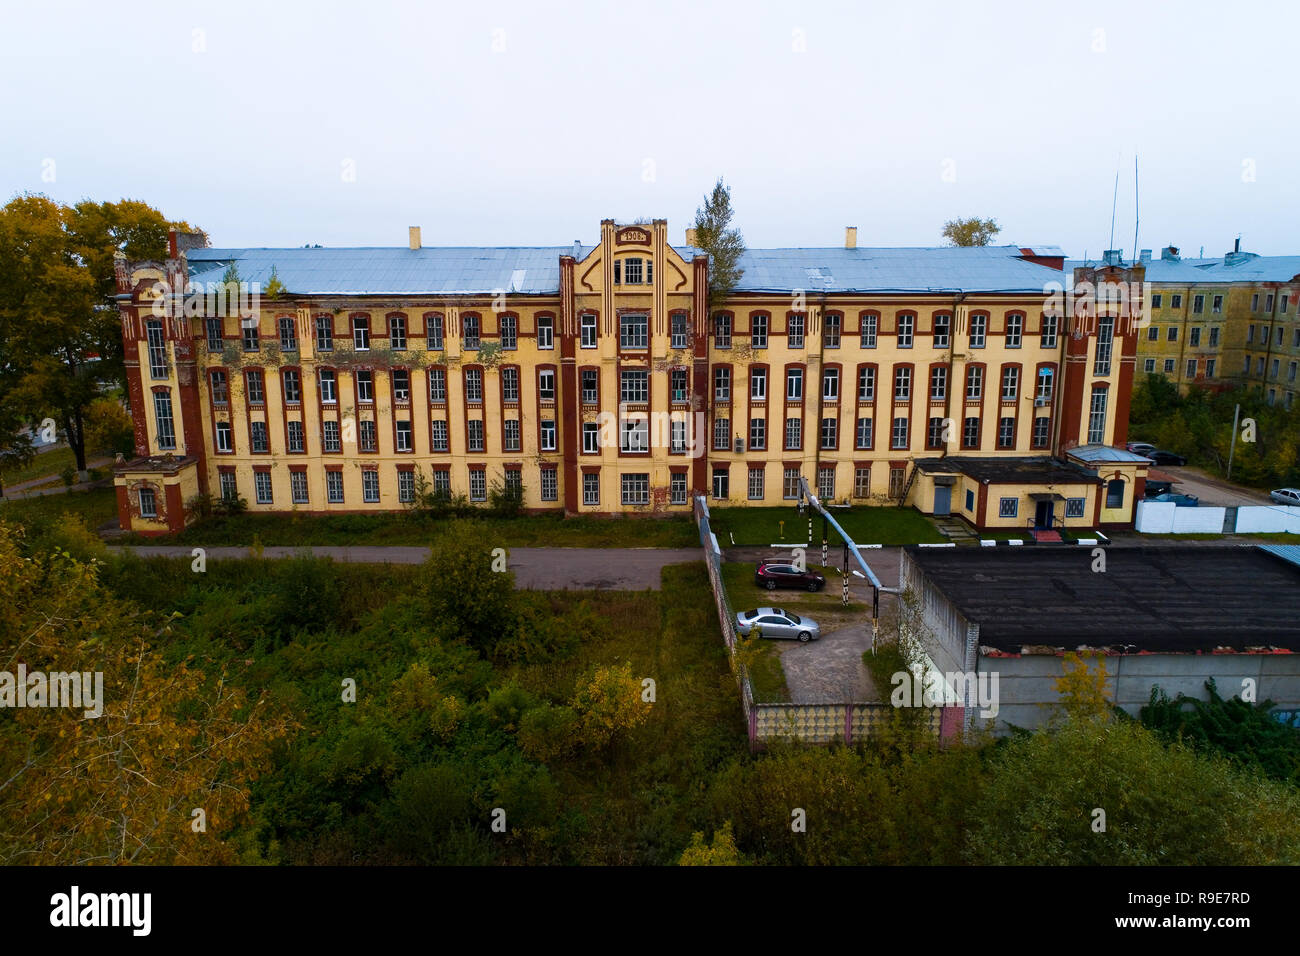 The building of a weaving factory in Likino-Dulyovo. Aerial photography. - Stock Image